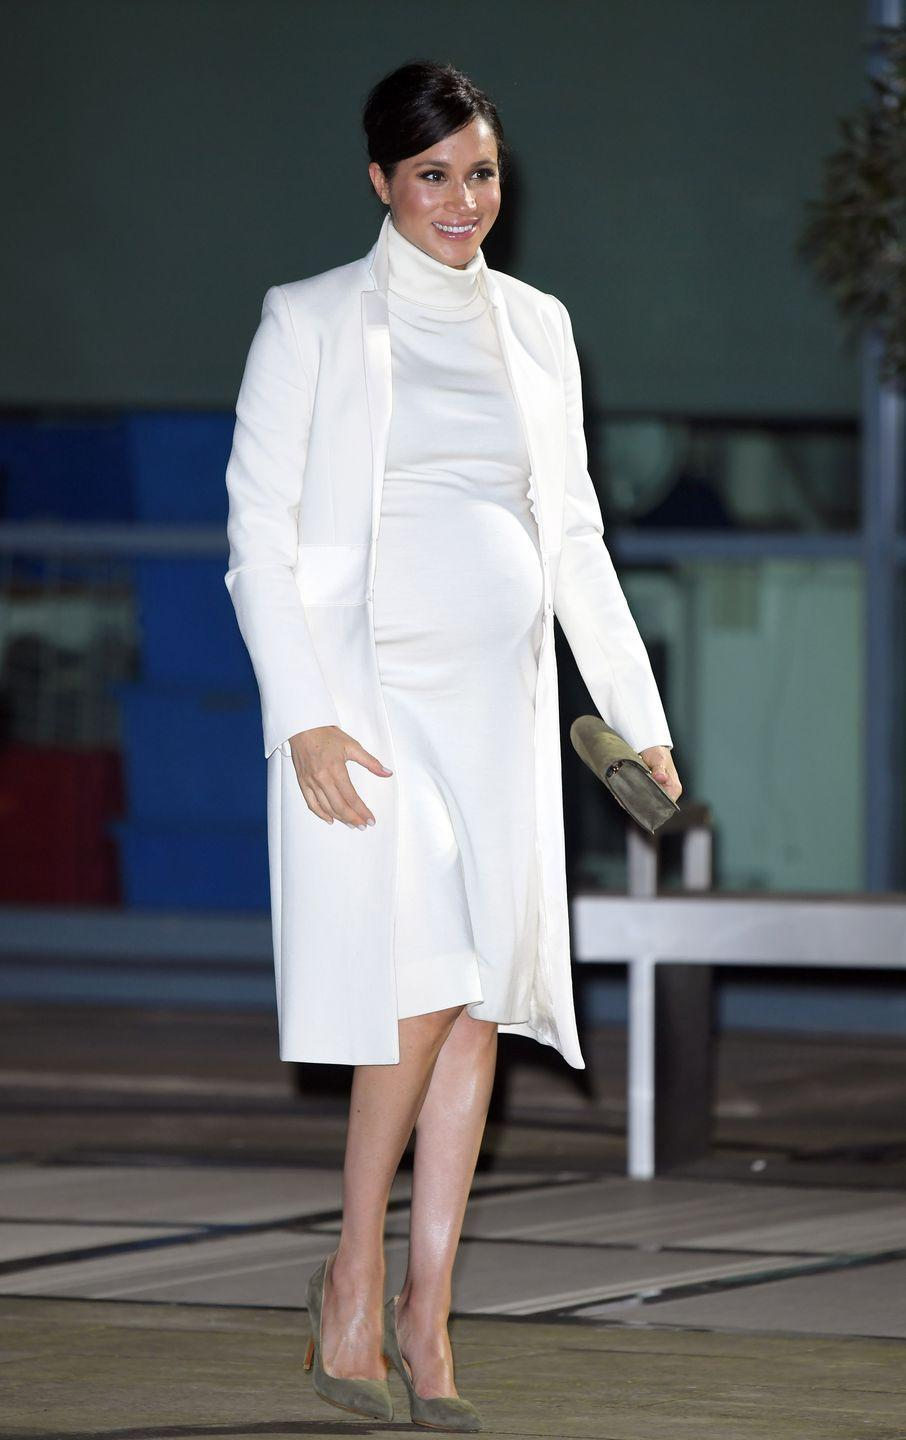 """<p>The Duchess of Sussex re-wore a white <a href=""""https://go.redirectingat.com?id=74968X1596630&url=https%3A%2F%2Forchardmile.com%2Famanda-wakeley%2Fcream-sculpted-tailoring-crombie-coat-awkf7c474c2&sref=https%3A%2F%2Fwww.townandcountrymag.com%2Fstyle%2Ffashion-trends%2Fg3272%2Fmeghan-markle-preppy-style%2F"""" rel=""""nofollow noopener"""" target=""""_blank"""" data-ylk=""""slk:Amanda Wakely coat"""" class=""""link rapid-noclick-resp"""">Amanda Wakely coat</a> with a turtleneck dress by Calvin Klein to attend <a href=""""https://www.townandcountrymag.com/style/fashion-trends/a26294017/meghan-markle-white-dress-coat-wider-earth/"""" rel=""""nofollow noopener"""" target=""""_blank"""" data-ylk=""""slk:a gala performance"""" class=""""link rapid-noclick-resp"""">a gala performance</a> of """"The Wider Earth"""" at the Natural History Museum. Meghan paired the white monochrome look with an <a href=""""https://go.redirectingat.com?id=74968X1596630&url=https%3A%2F%2Fwww.ralphlauren.com%2Fwomen-accessories-handbags&sref=https%3A%2F%2Fwww.townandcountrymag.com%2Fstyle%2Ffashion-trends%2Fg3272%2Fmeghan-markle-preppy-style%2F"""" rel=""""nofollow noopener"""" target=""""_blank"""" data-ylk=""""slk:olive clutch and pumps"""" class=""""link rapid-noclick-resp"""">olive clutch and pumps</a>, both by Ralph Lauren, <a href=""""https://www.townandcountrymag.com/society/tradition/a22026782/meghan-markle-dress-prince-louis-christening/"""" rel=""""nofollow noopener"""" target=""""_blank"""" data-ylk=""""slk:which she previously wore"""" class=""""link rapid-noclick-resp"""">which she previously wore </a><a href=""""https://www.townandcountrymag.com/society/tradition/g22025900/prince-louis-royal-baby-christening-baptism-photos/"""" rel=""""nofollow noopener"""" target=""""_blank"""" data-ylk=""""slk:to Prince Louis's christening"""" class=""""link rapid-noclick-resp"""">to Prince Louis's christening</a>. </p>"""